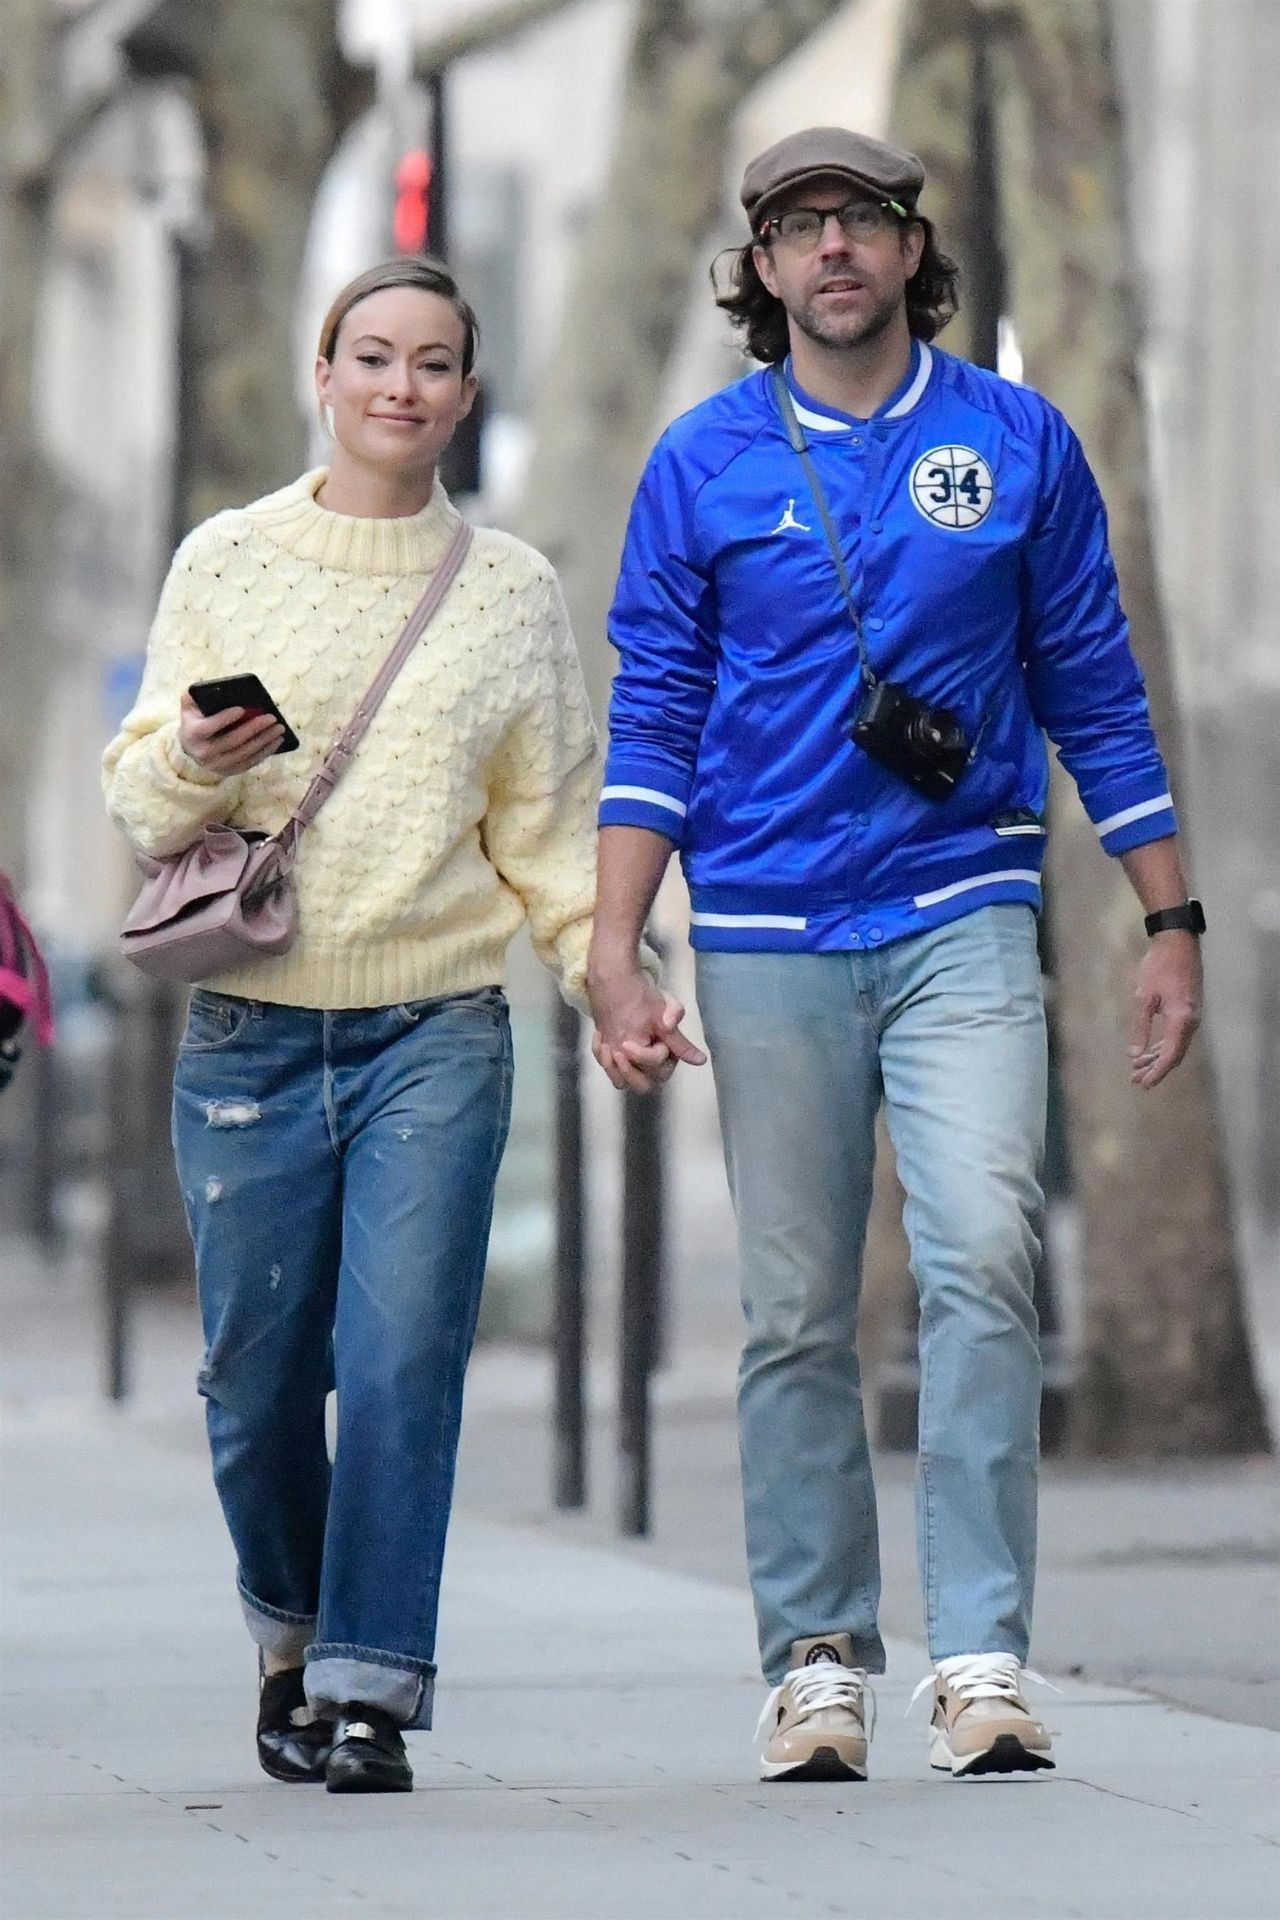 Olivia Wilde And Jason Sudeikis Out In Paris Https Ift Tt 2ondrrc Olivia Wilde Fashion Normcore